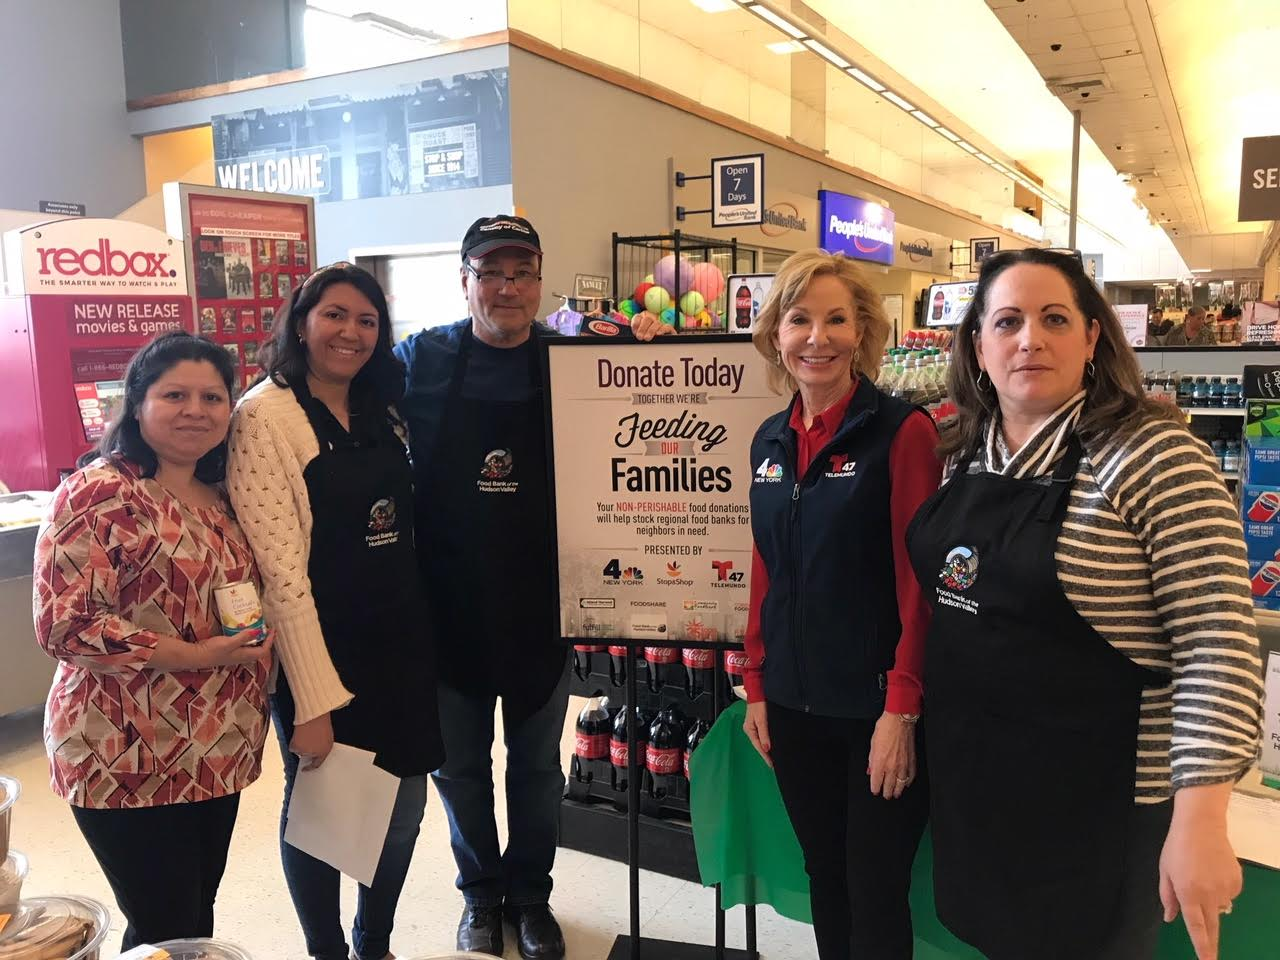 NBC 4 NEW YORK, TELEMUNDO 47 AND STOP & SHOP TEAM UP TO DELIVER 1.9 MILLION MEALS FOR FAMILIES IN NEED